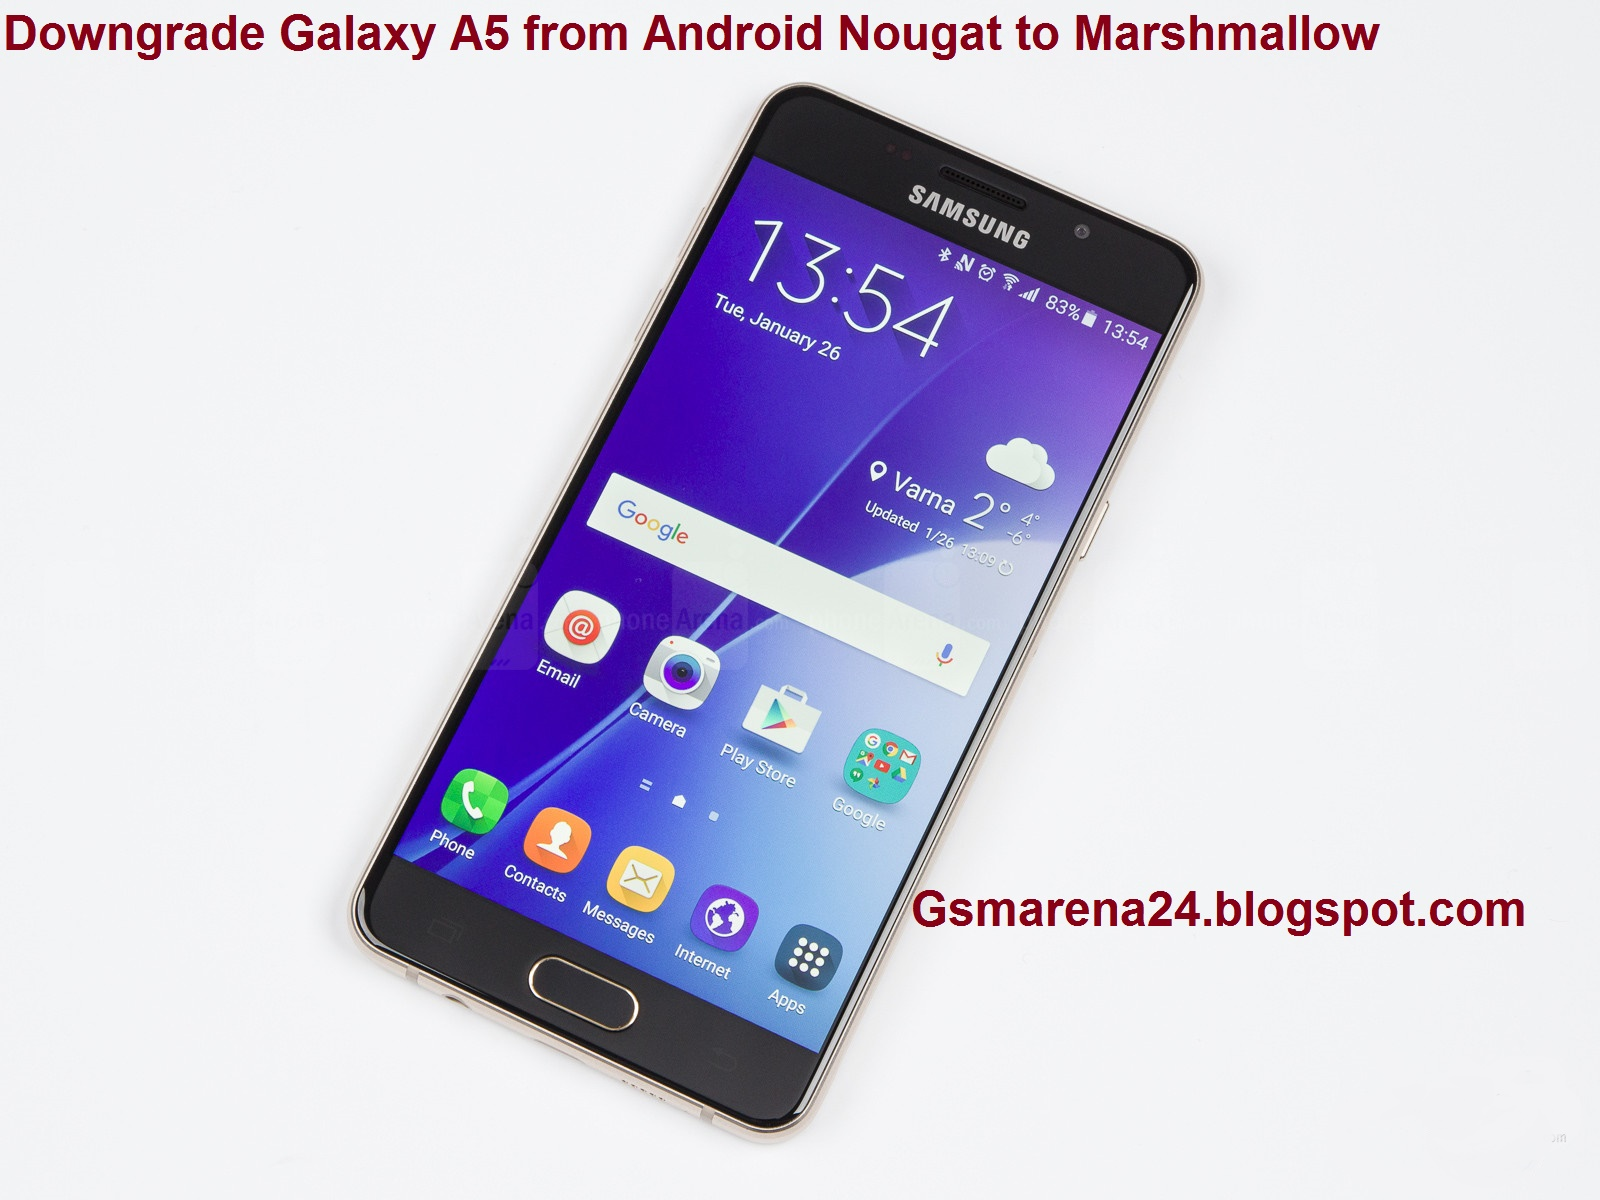 Downgrade Galaxy A5 from Android Nougat to Marshmallow